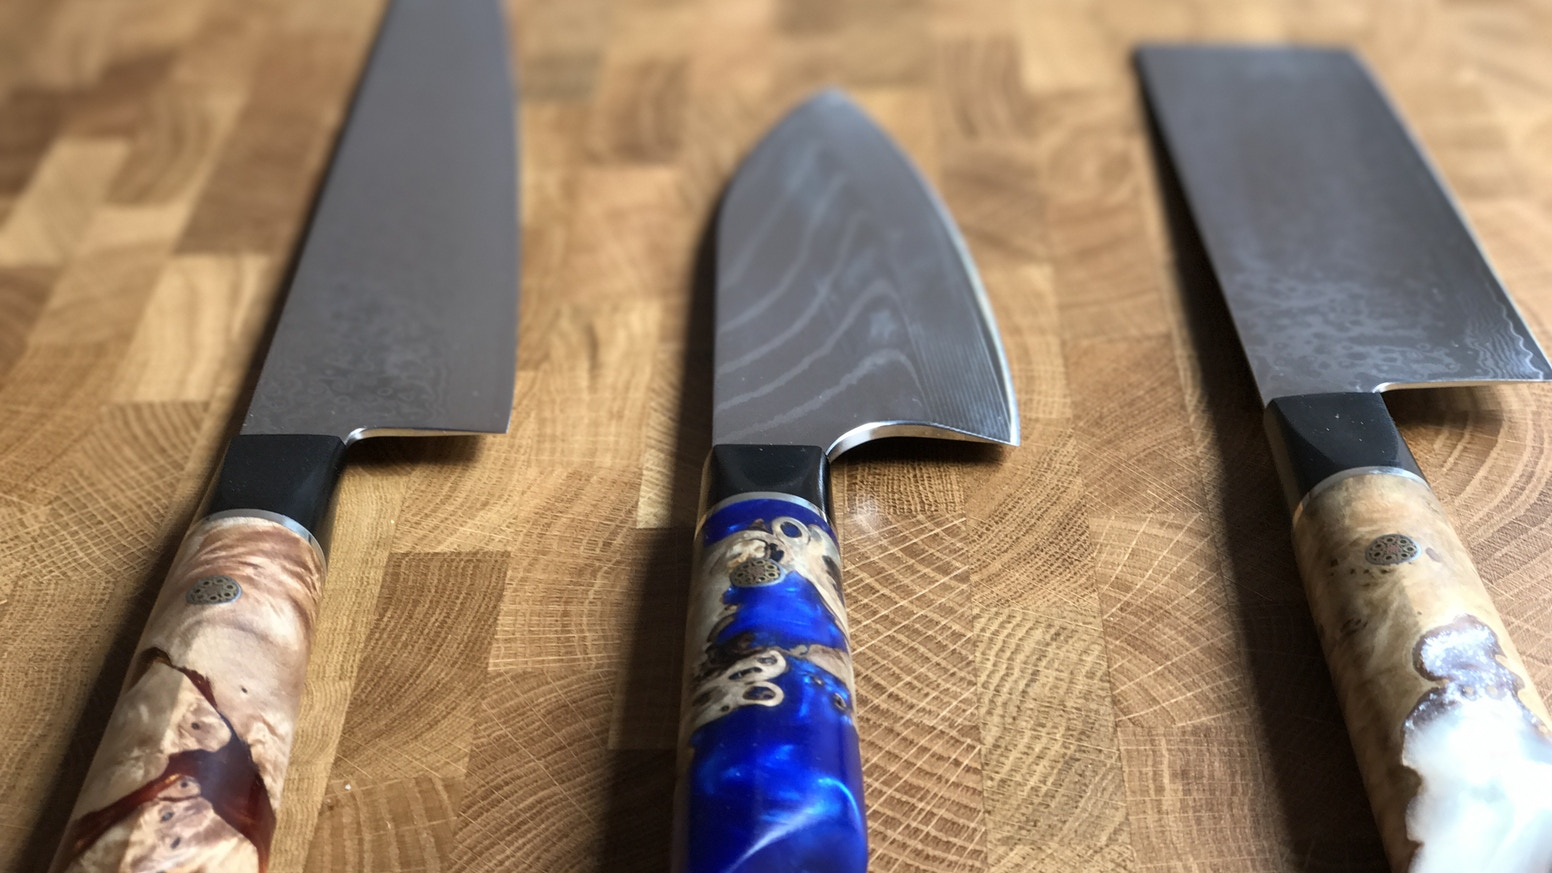 Kitchen Knives Beautiful Unique With Wow Factor By Koi Knives Kickstarter